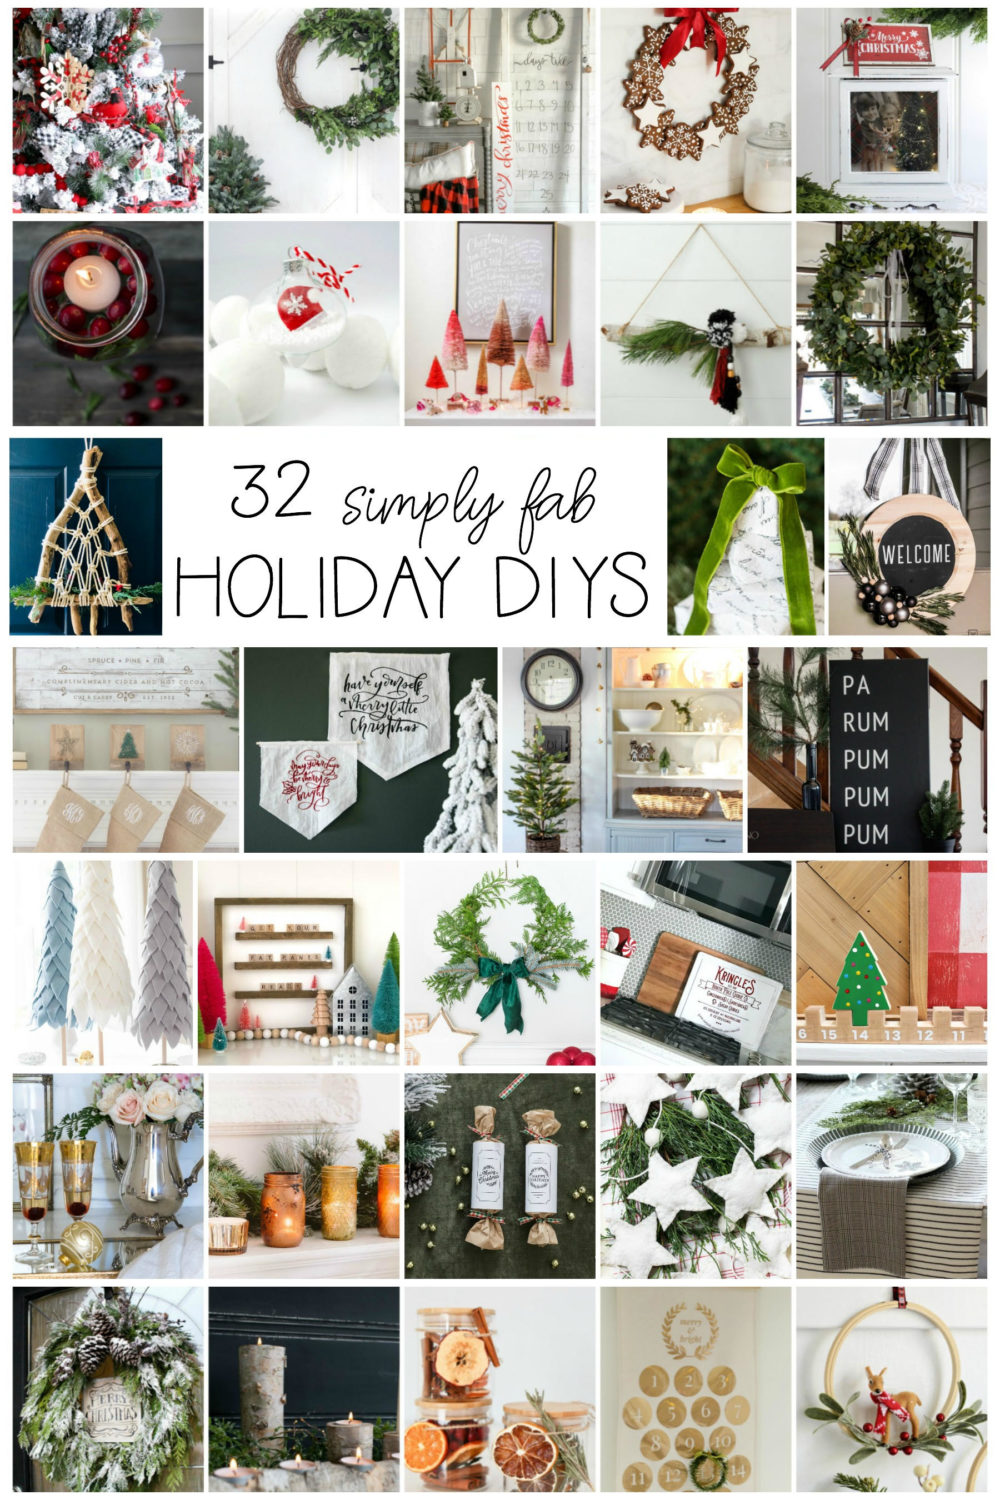 Tons of holiday craft and decor ideas!